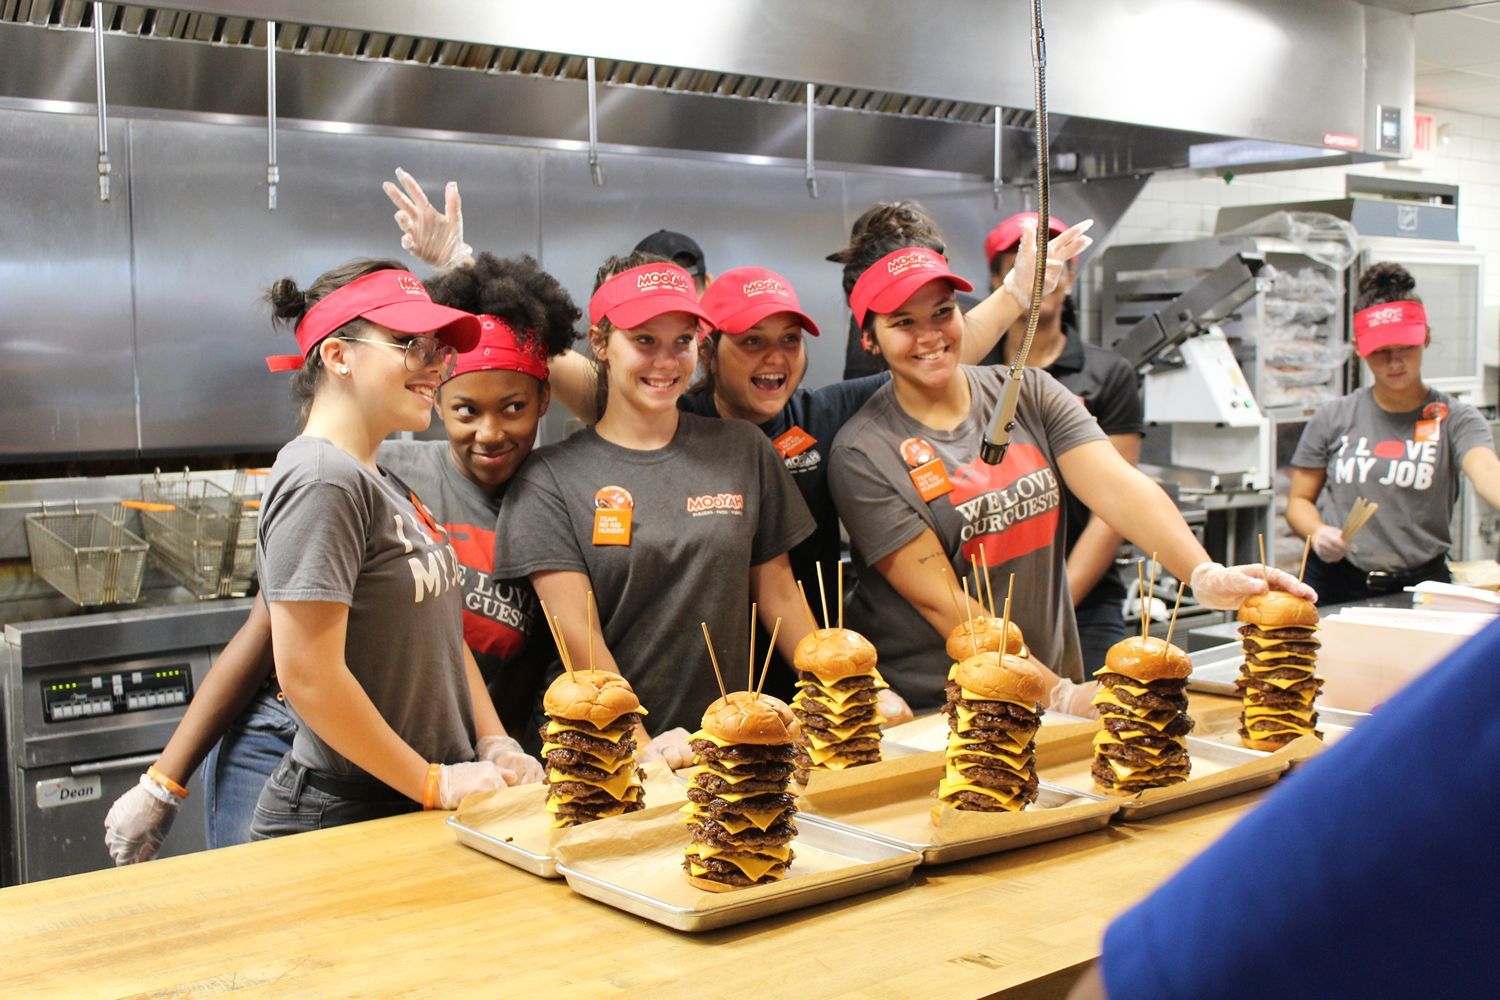 MOOYAH Burgers, Fries & Shakes Celebrates 10th Birthday with $15,000 Donation to No Kid Hungry